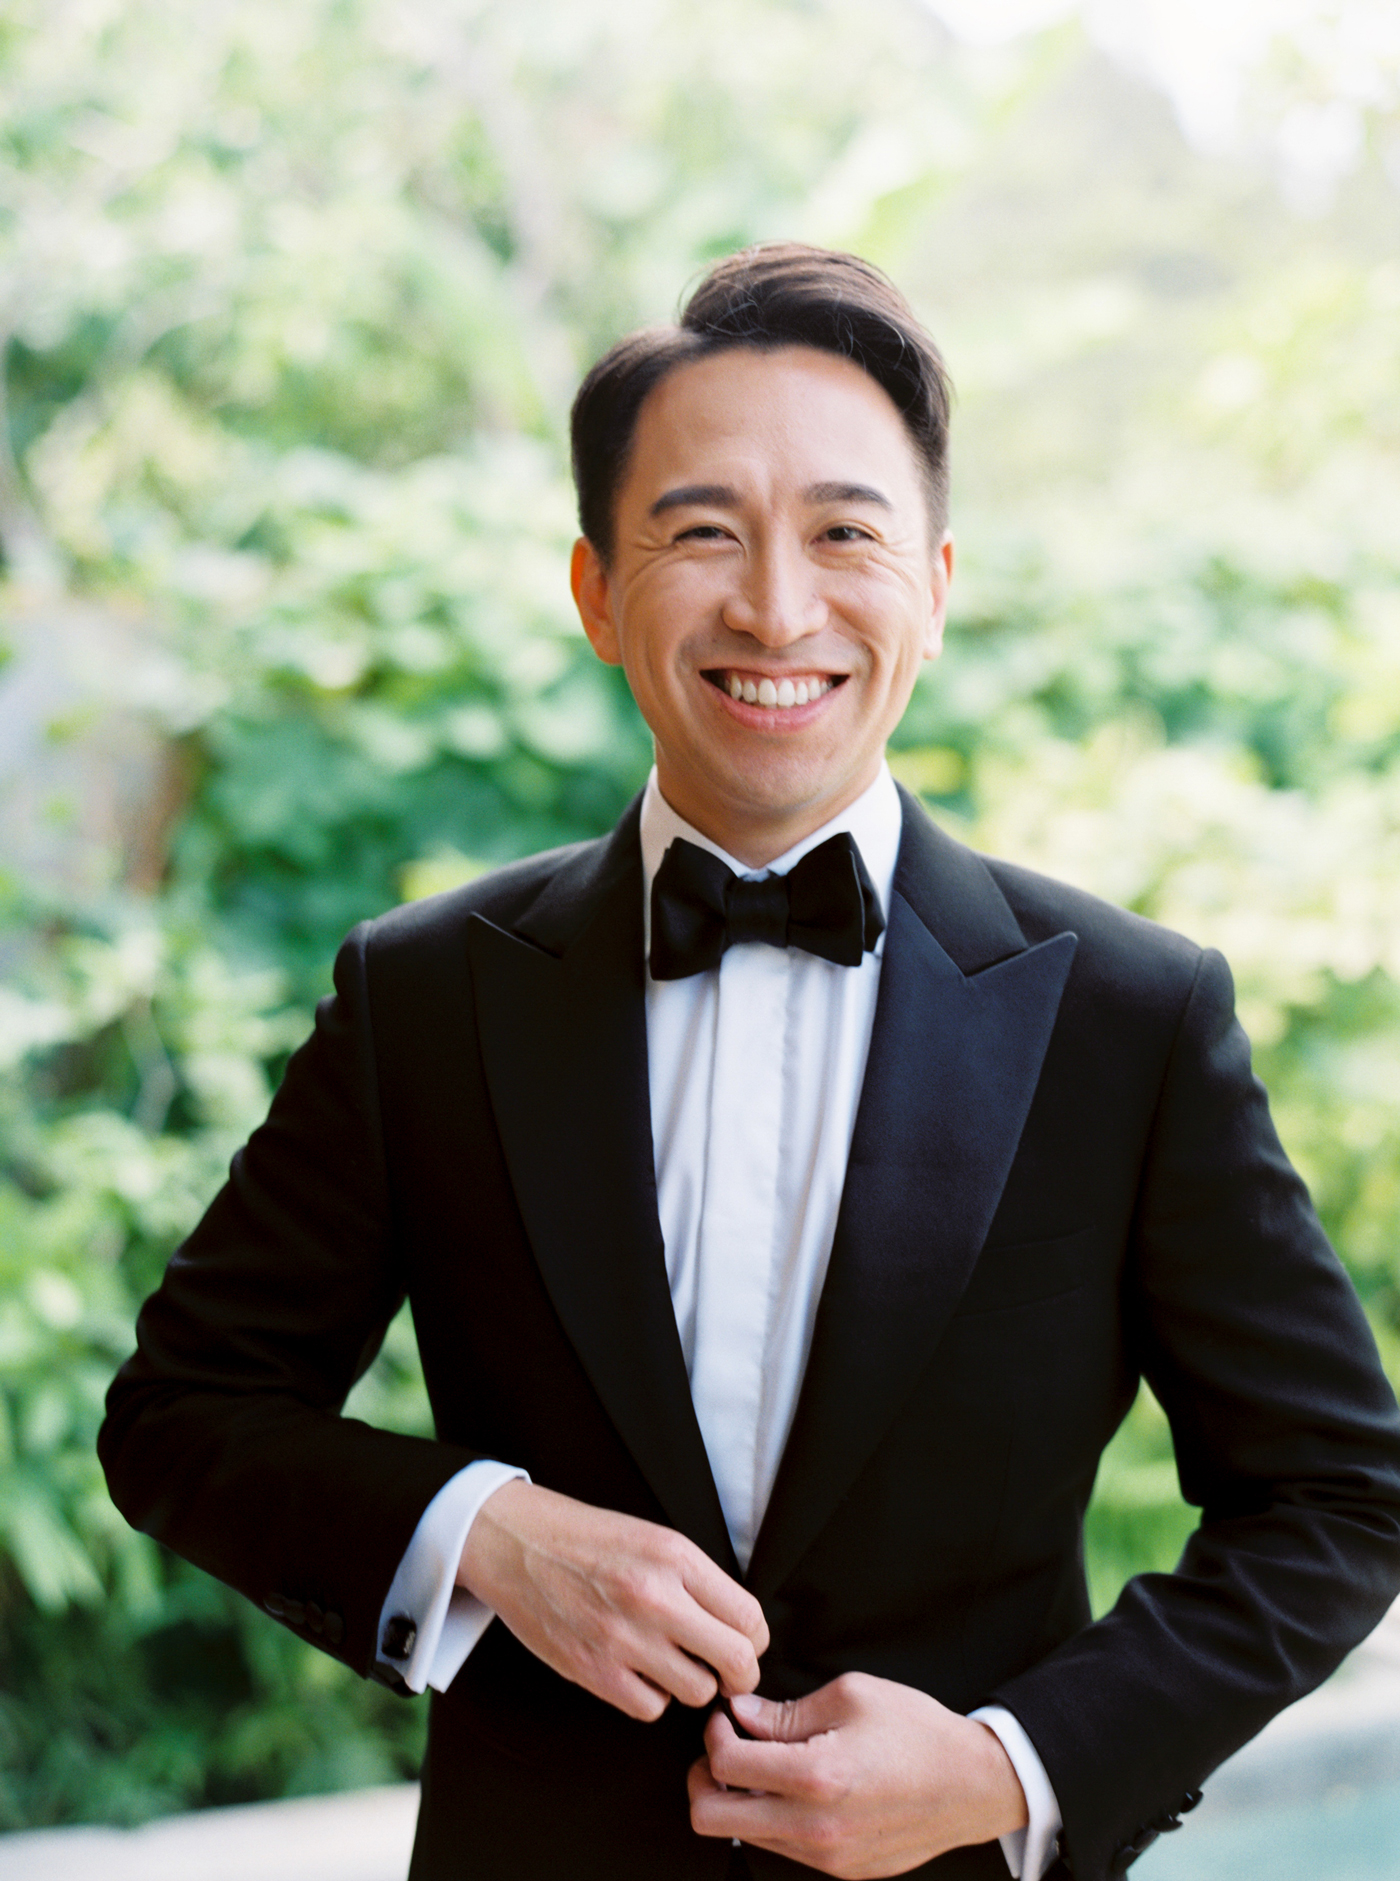 groom wearing classic black tuxedo